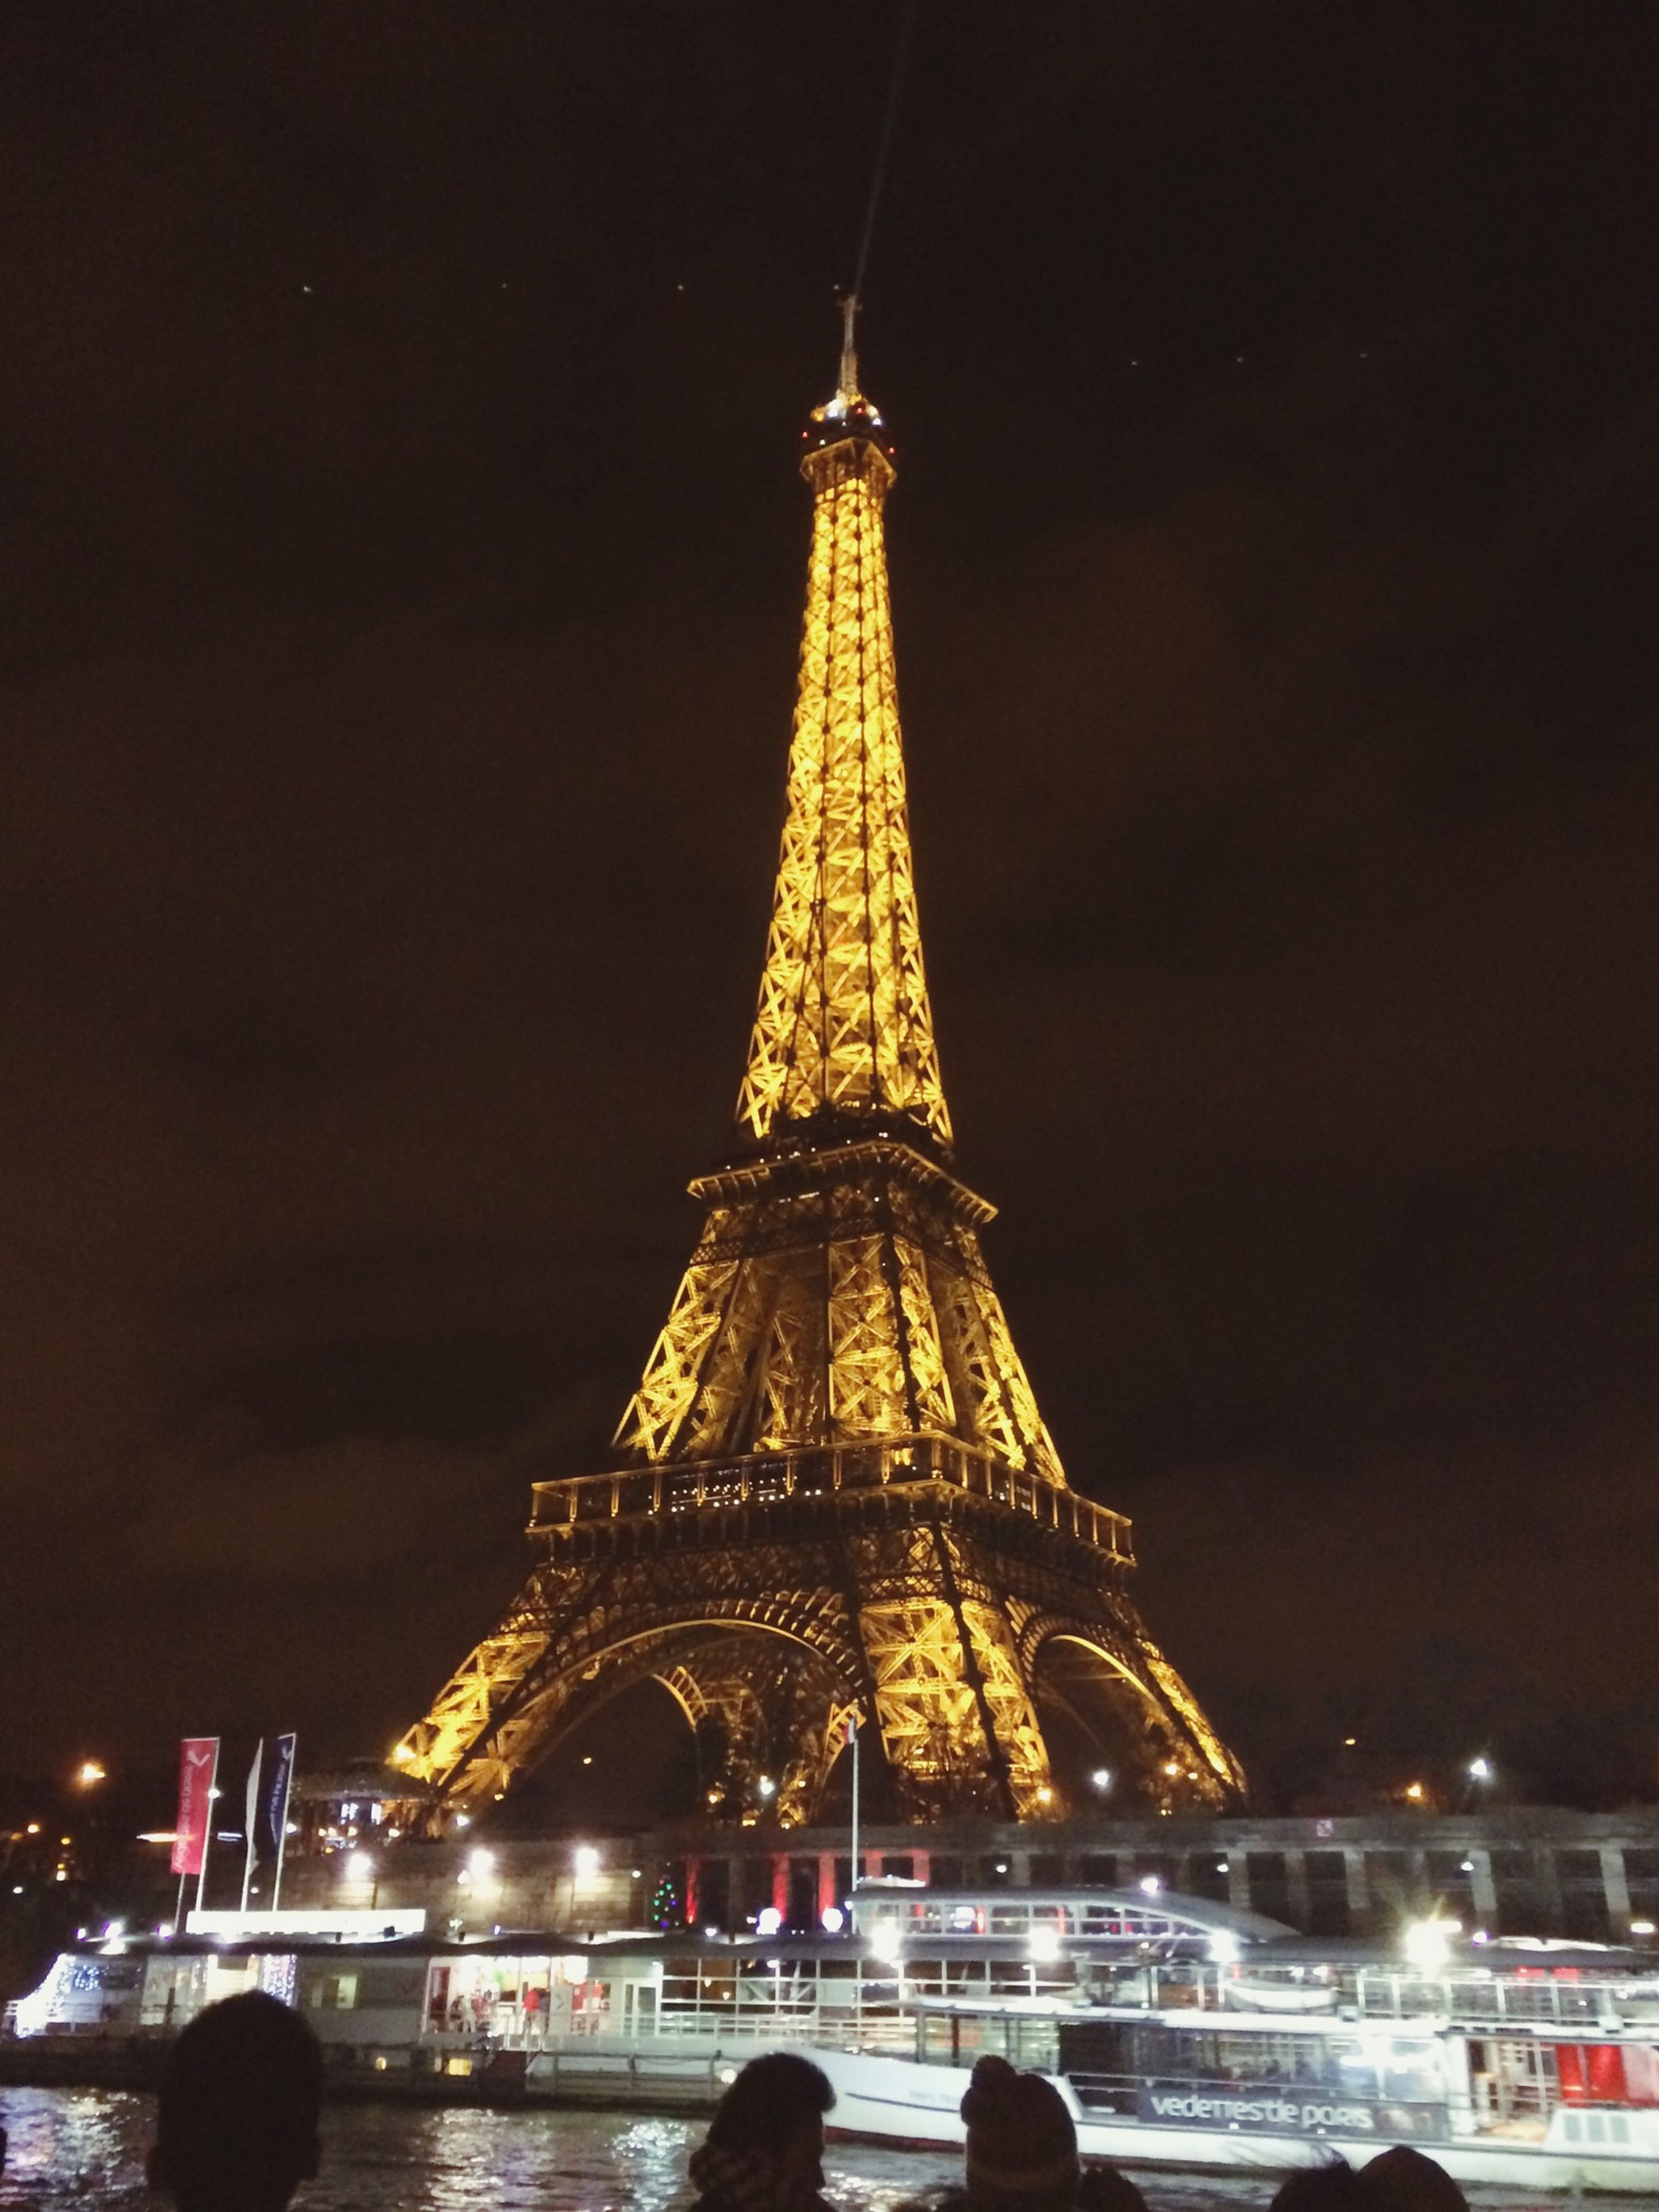 famous place, travel destinations, international landmark, illuminated, tourism, architecture, eiffel tower, built structure, capital cities, travel, night, city, sky, tower, tall - high, culture, building exterior, dusk, city life, history